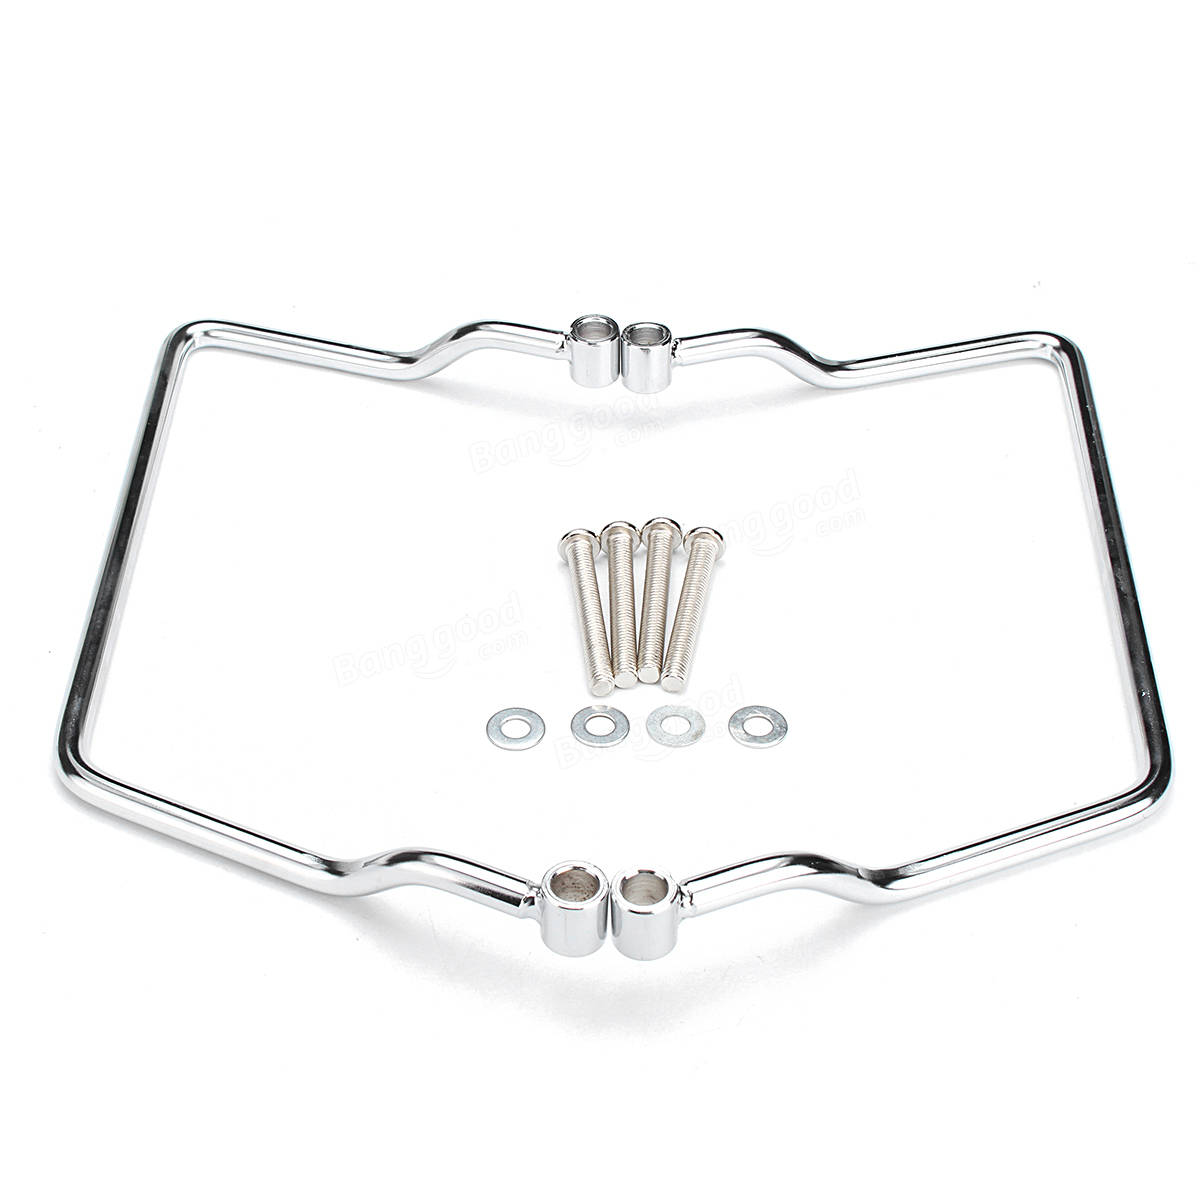 Saddle Bag ChromE Mount Bracket For Yamaha V-Star Dragstar